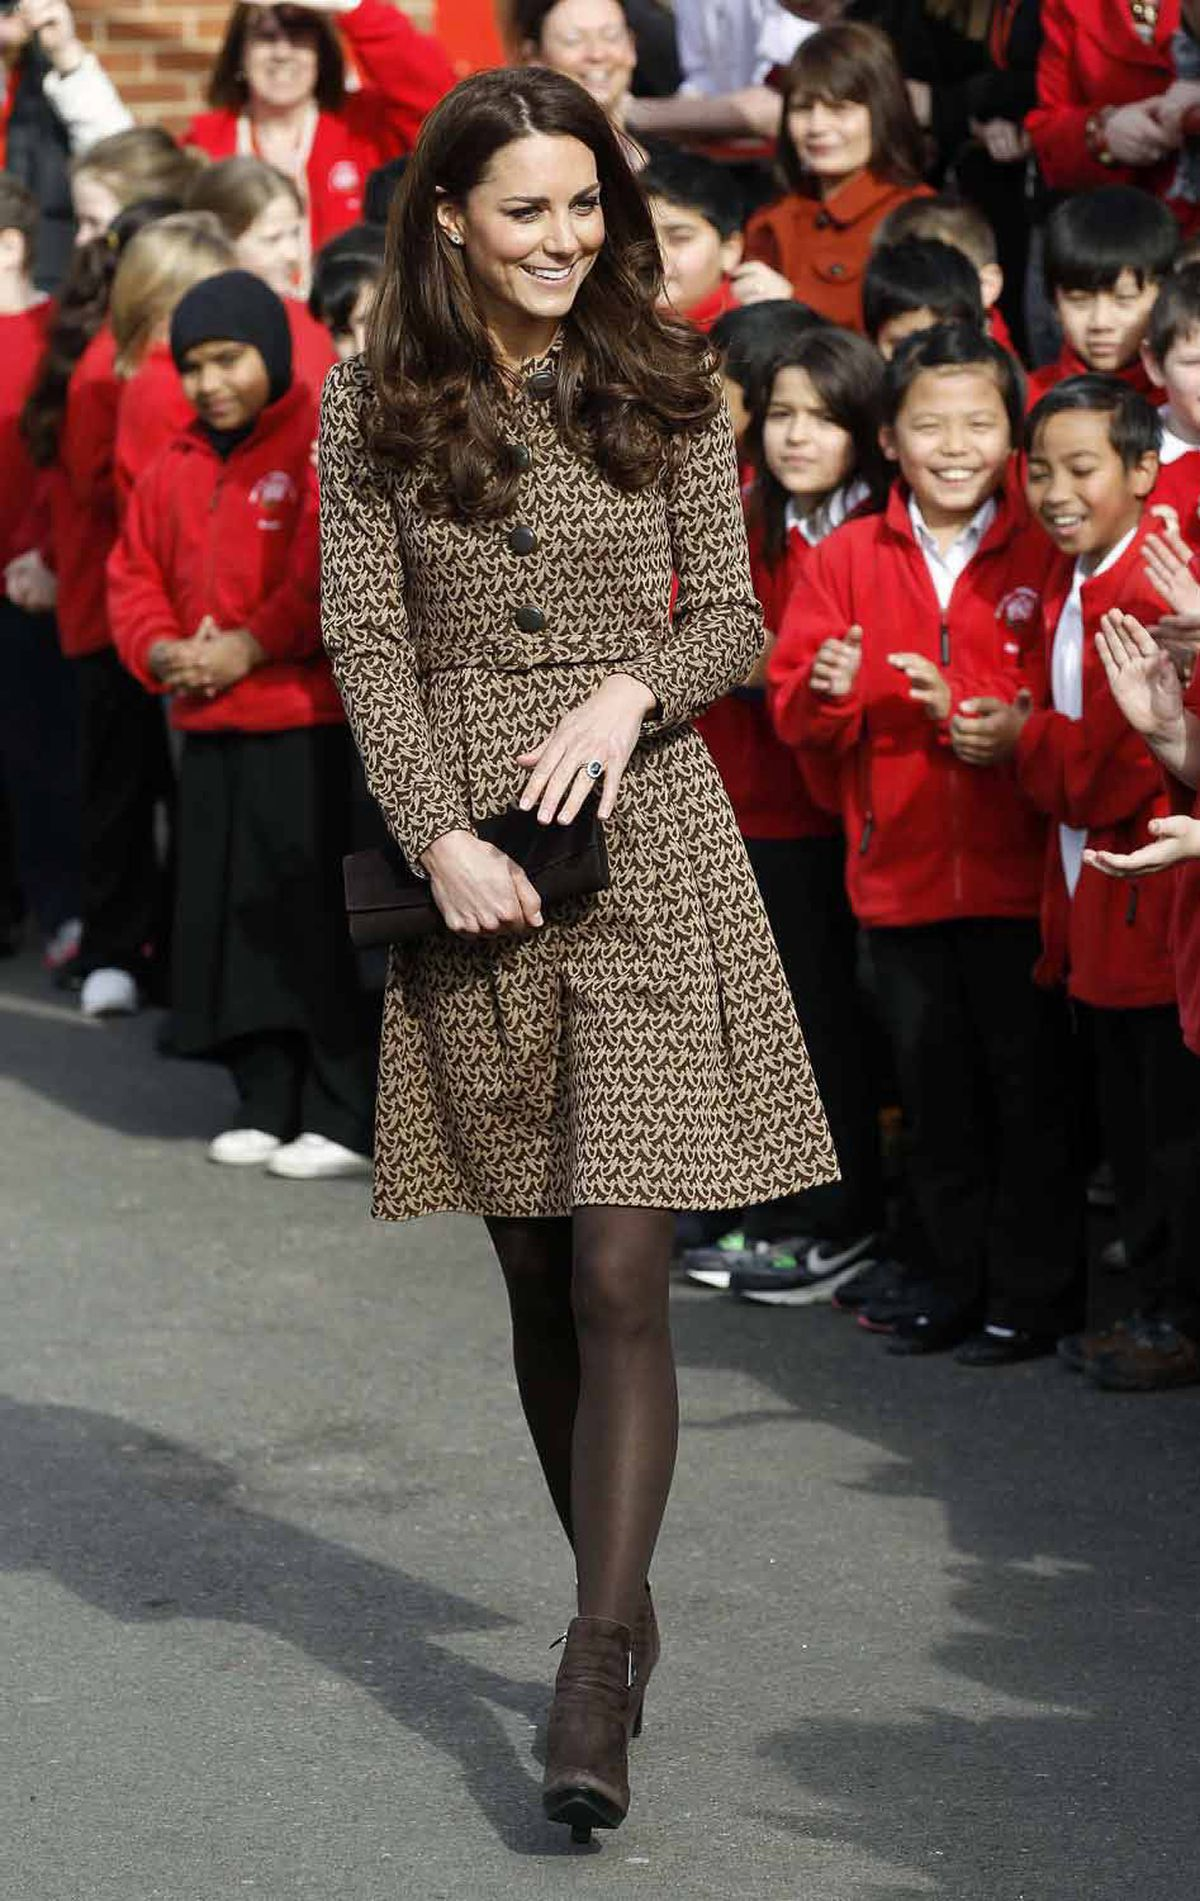 Kate looks prim and proper in a tweed coat-dress by Irish designer Orla Kiely as she visits Rose Hill Primary School in Oxford on February 21.